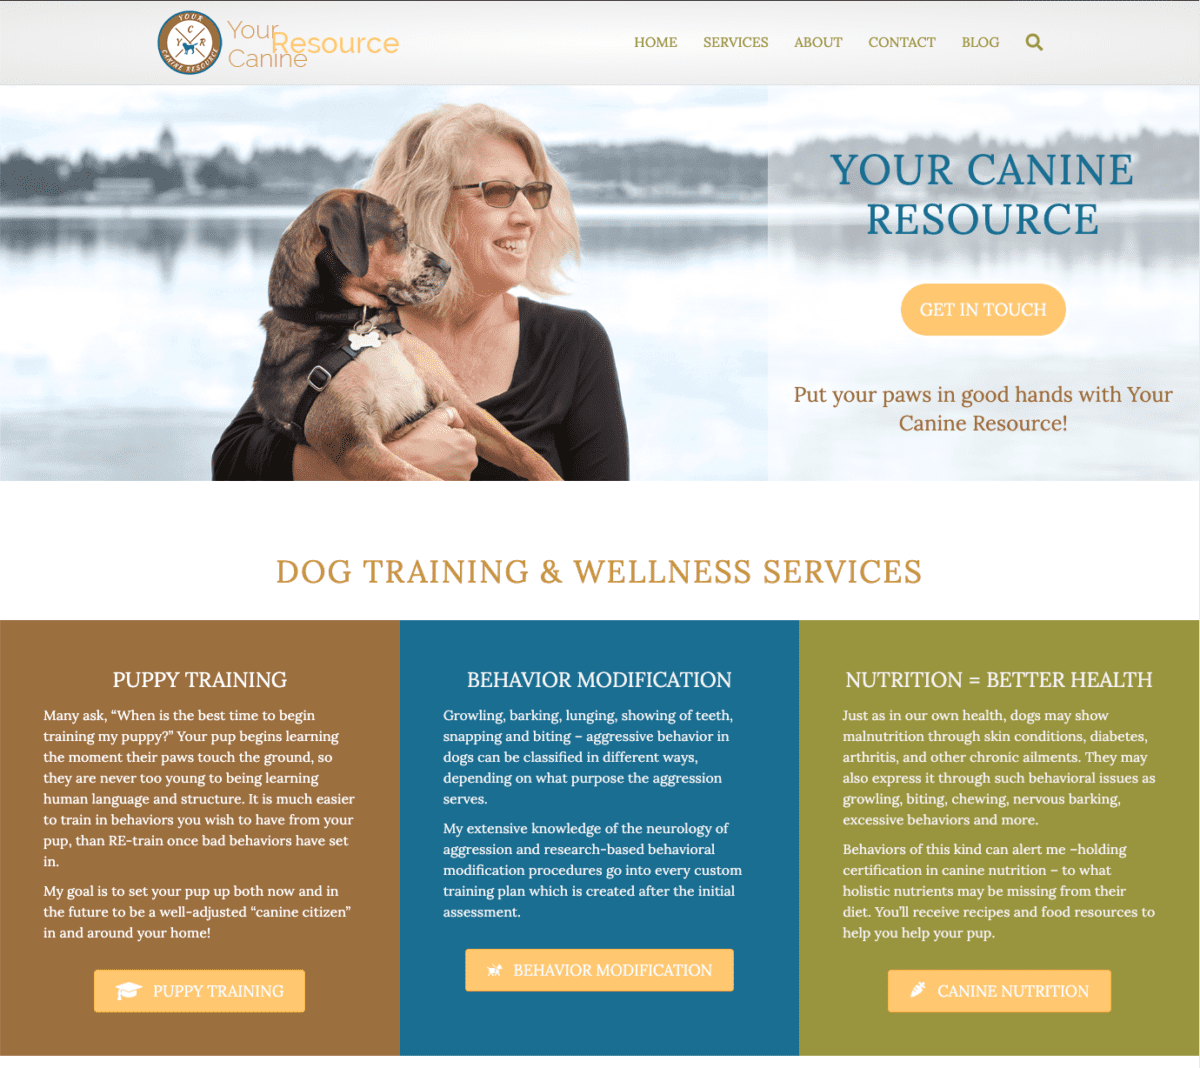 Gotsowell redesign of Your Canine Resource site